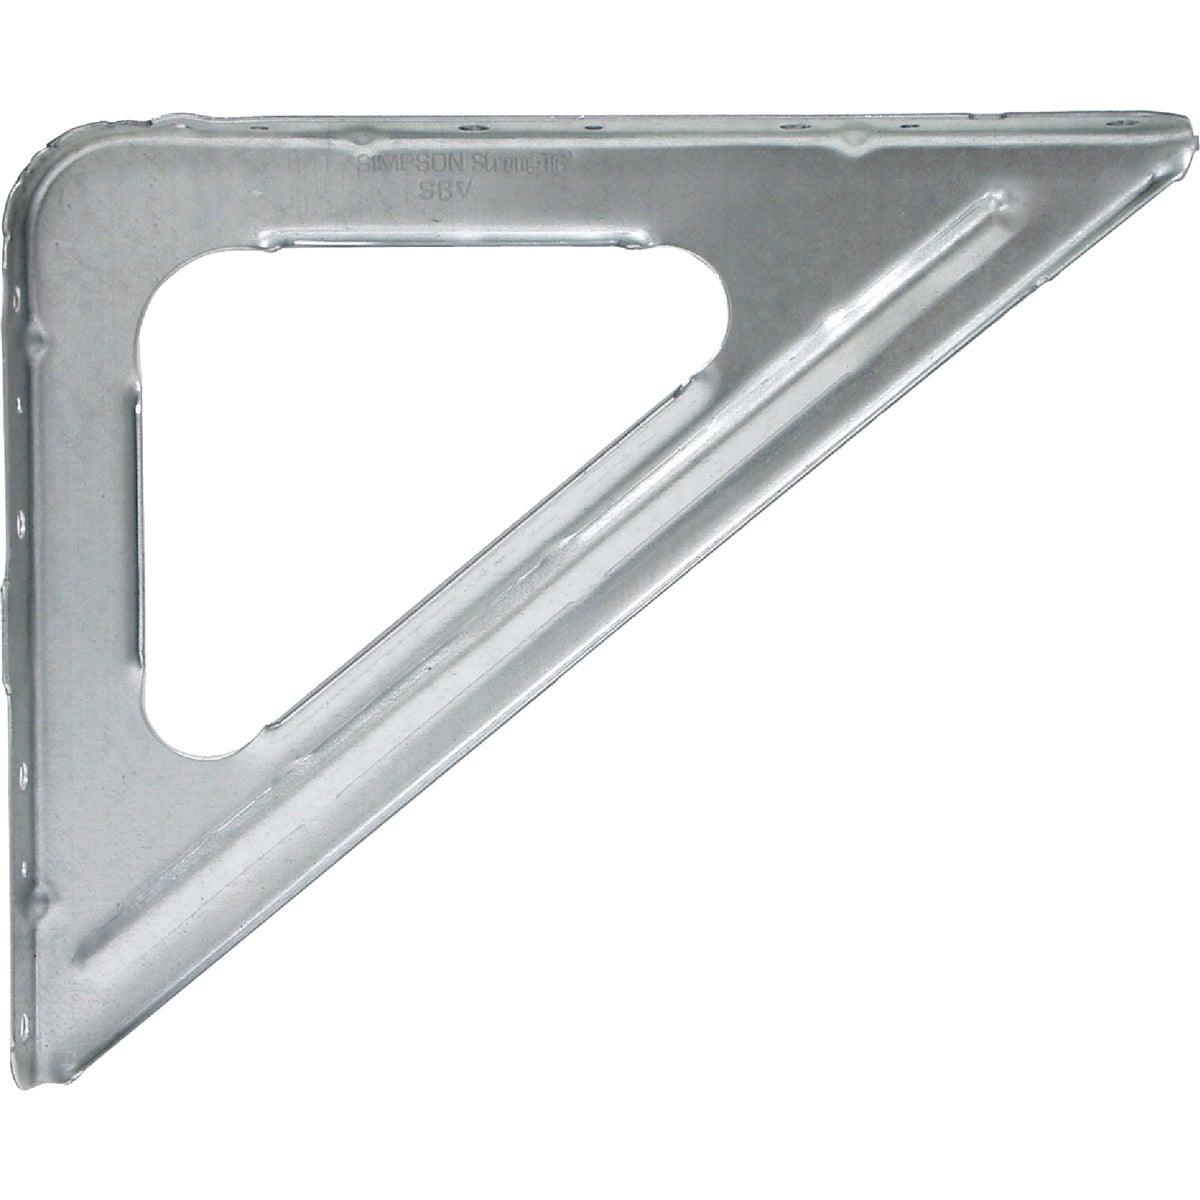 HEAVY SHELF BRACKET - SBV by Simpson Strong Tie